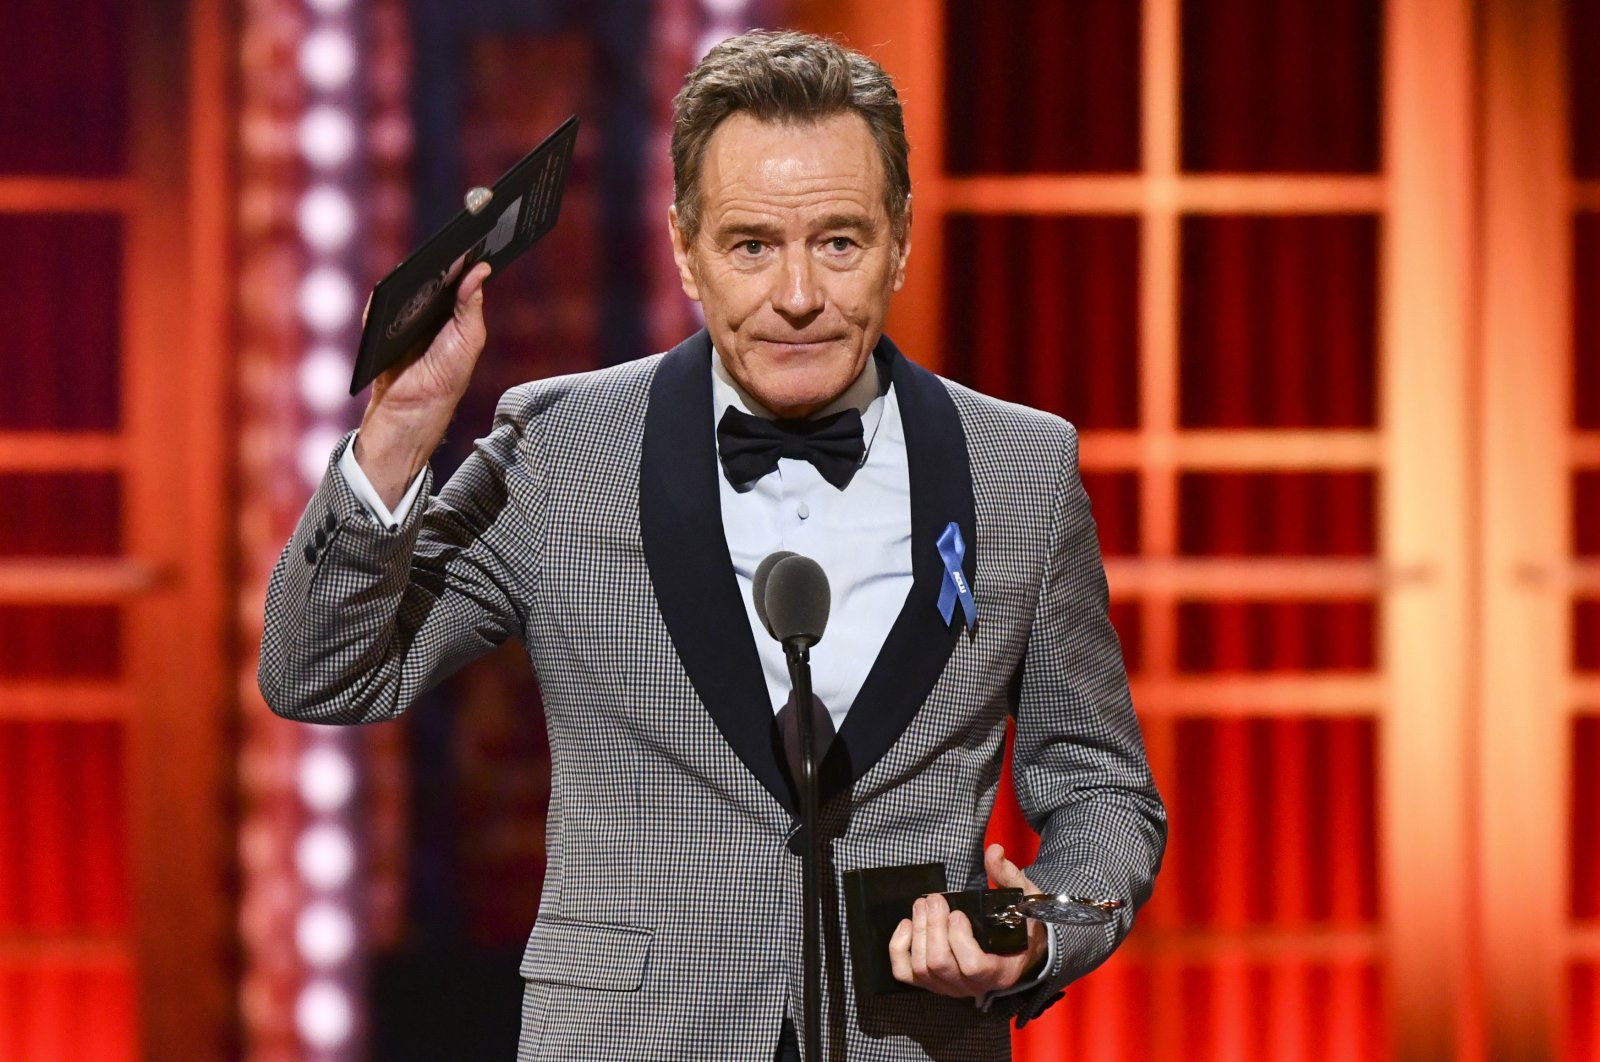 Bryan Cranston during the 73rd annual Tony Awards in New York, U.S., June 9, 2019. (AP Photo)